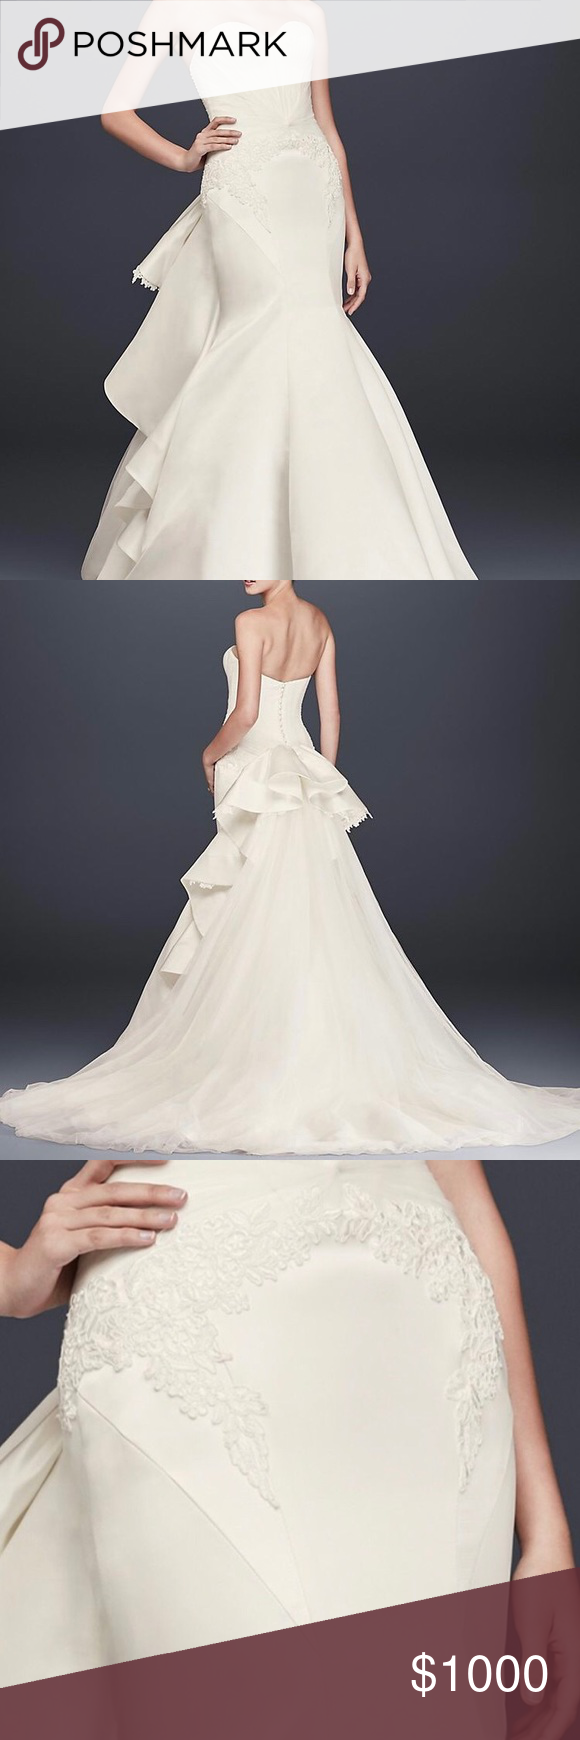 Zac posen wedding dress  Truly ZAC POSEN Wedding gown  Zac posen wedding gowns Zac posen